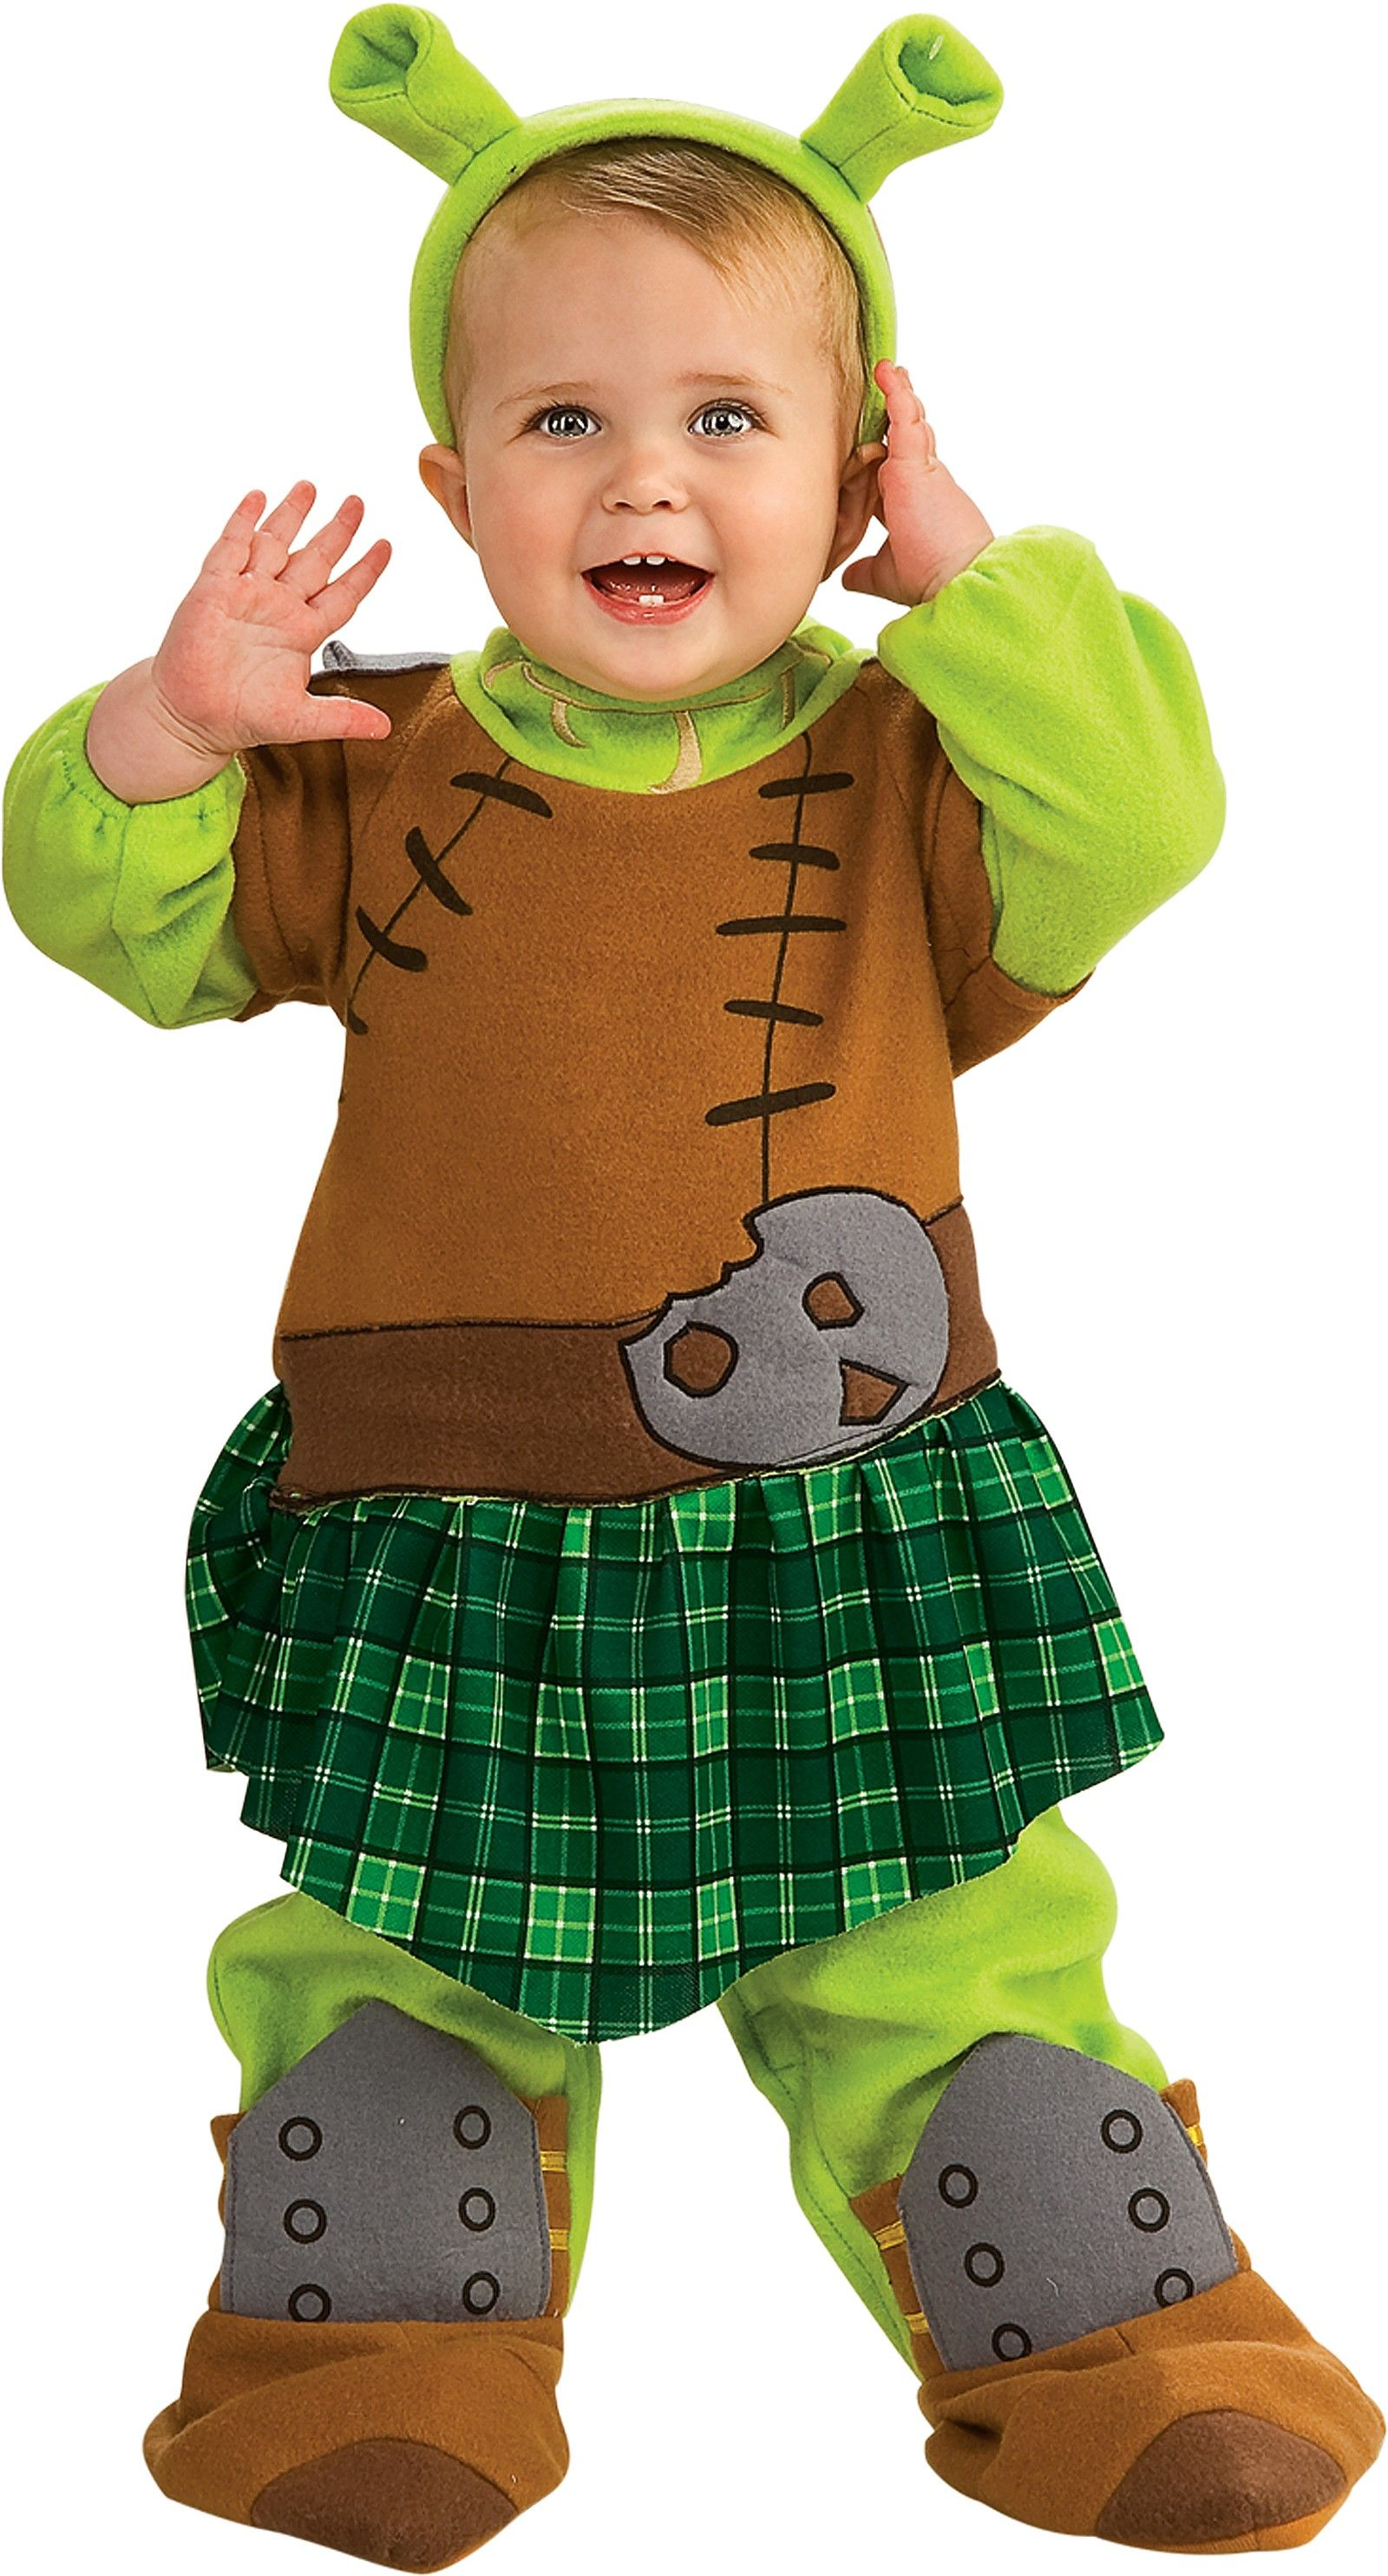 Shrek Forever After Fiona Warrior Infant Toddler Girl S Costume Toddler Costumes Girl Newborn Halloween Costumes Baby Costumes